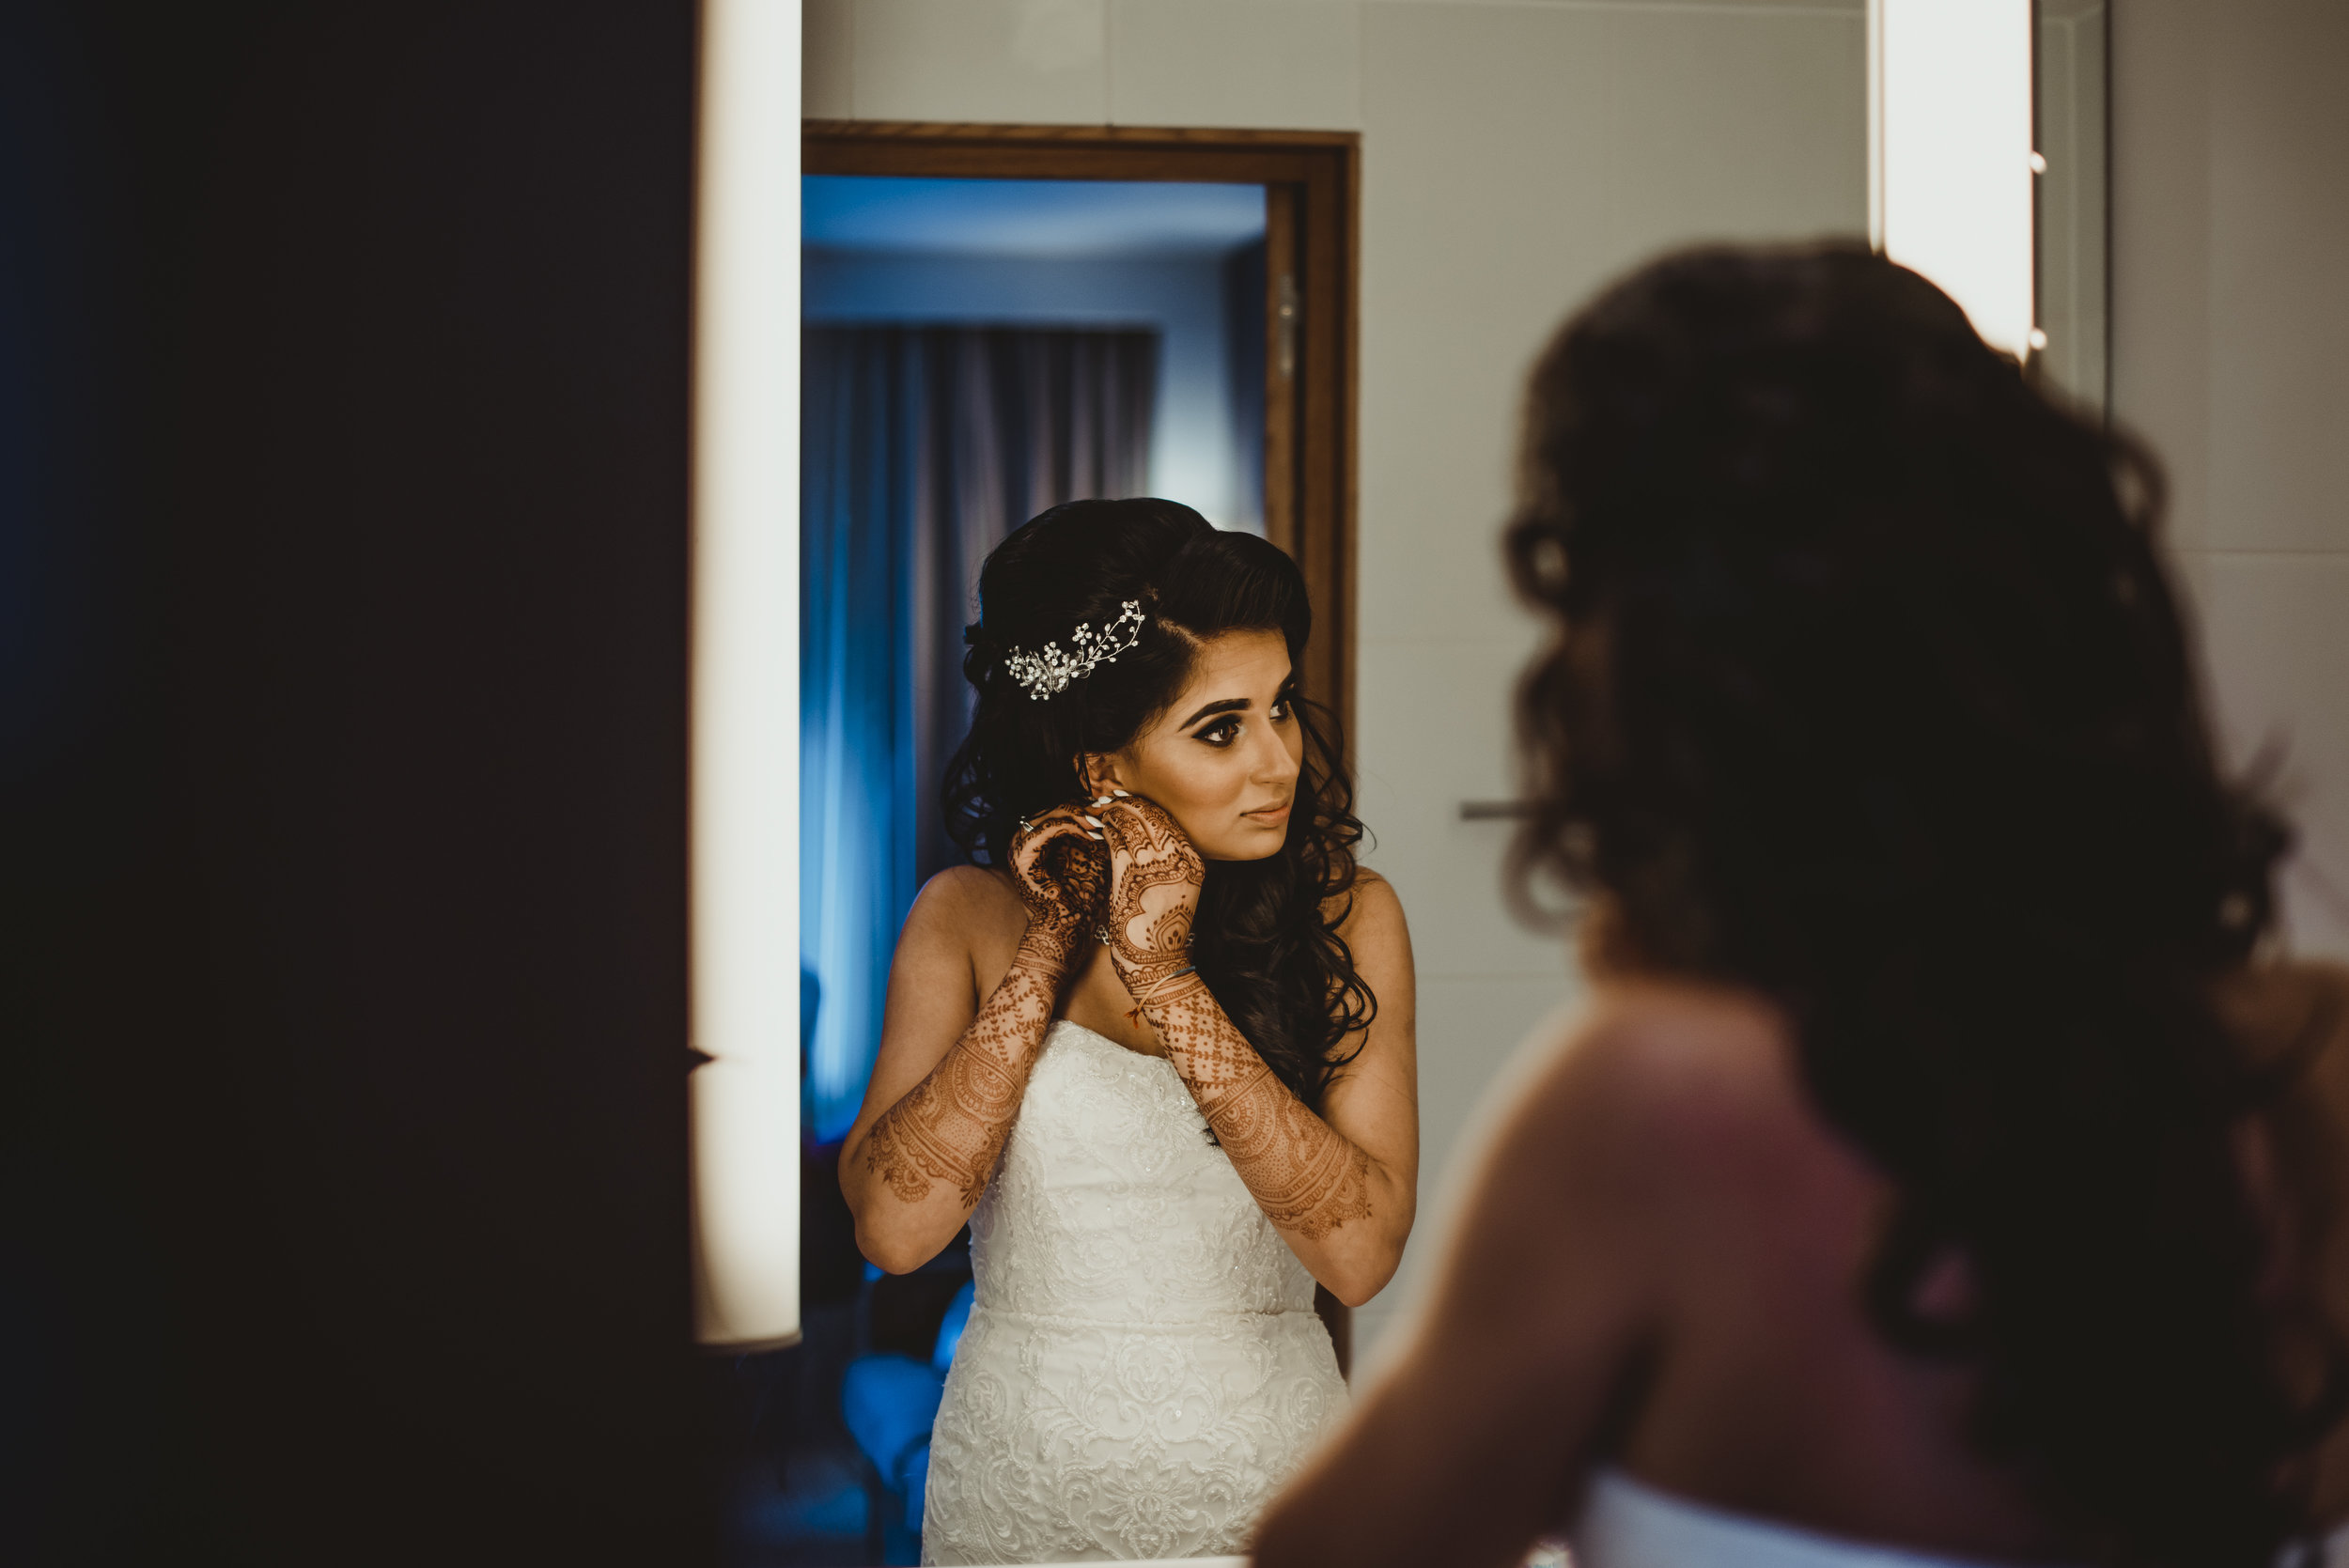 N&J_MILTON_KEYNES_WEDDING_LONDON_PHOTOGRAPHER_ASIAN_WEDDING-901.JPG